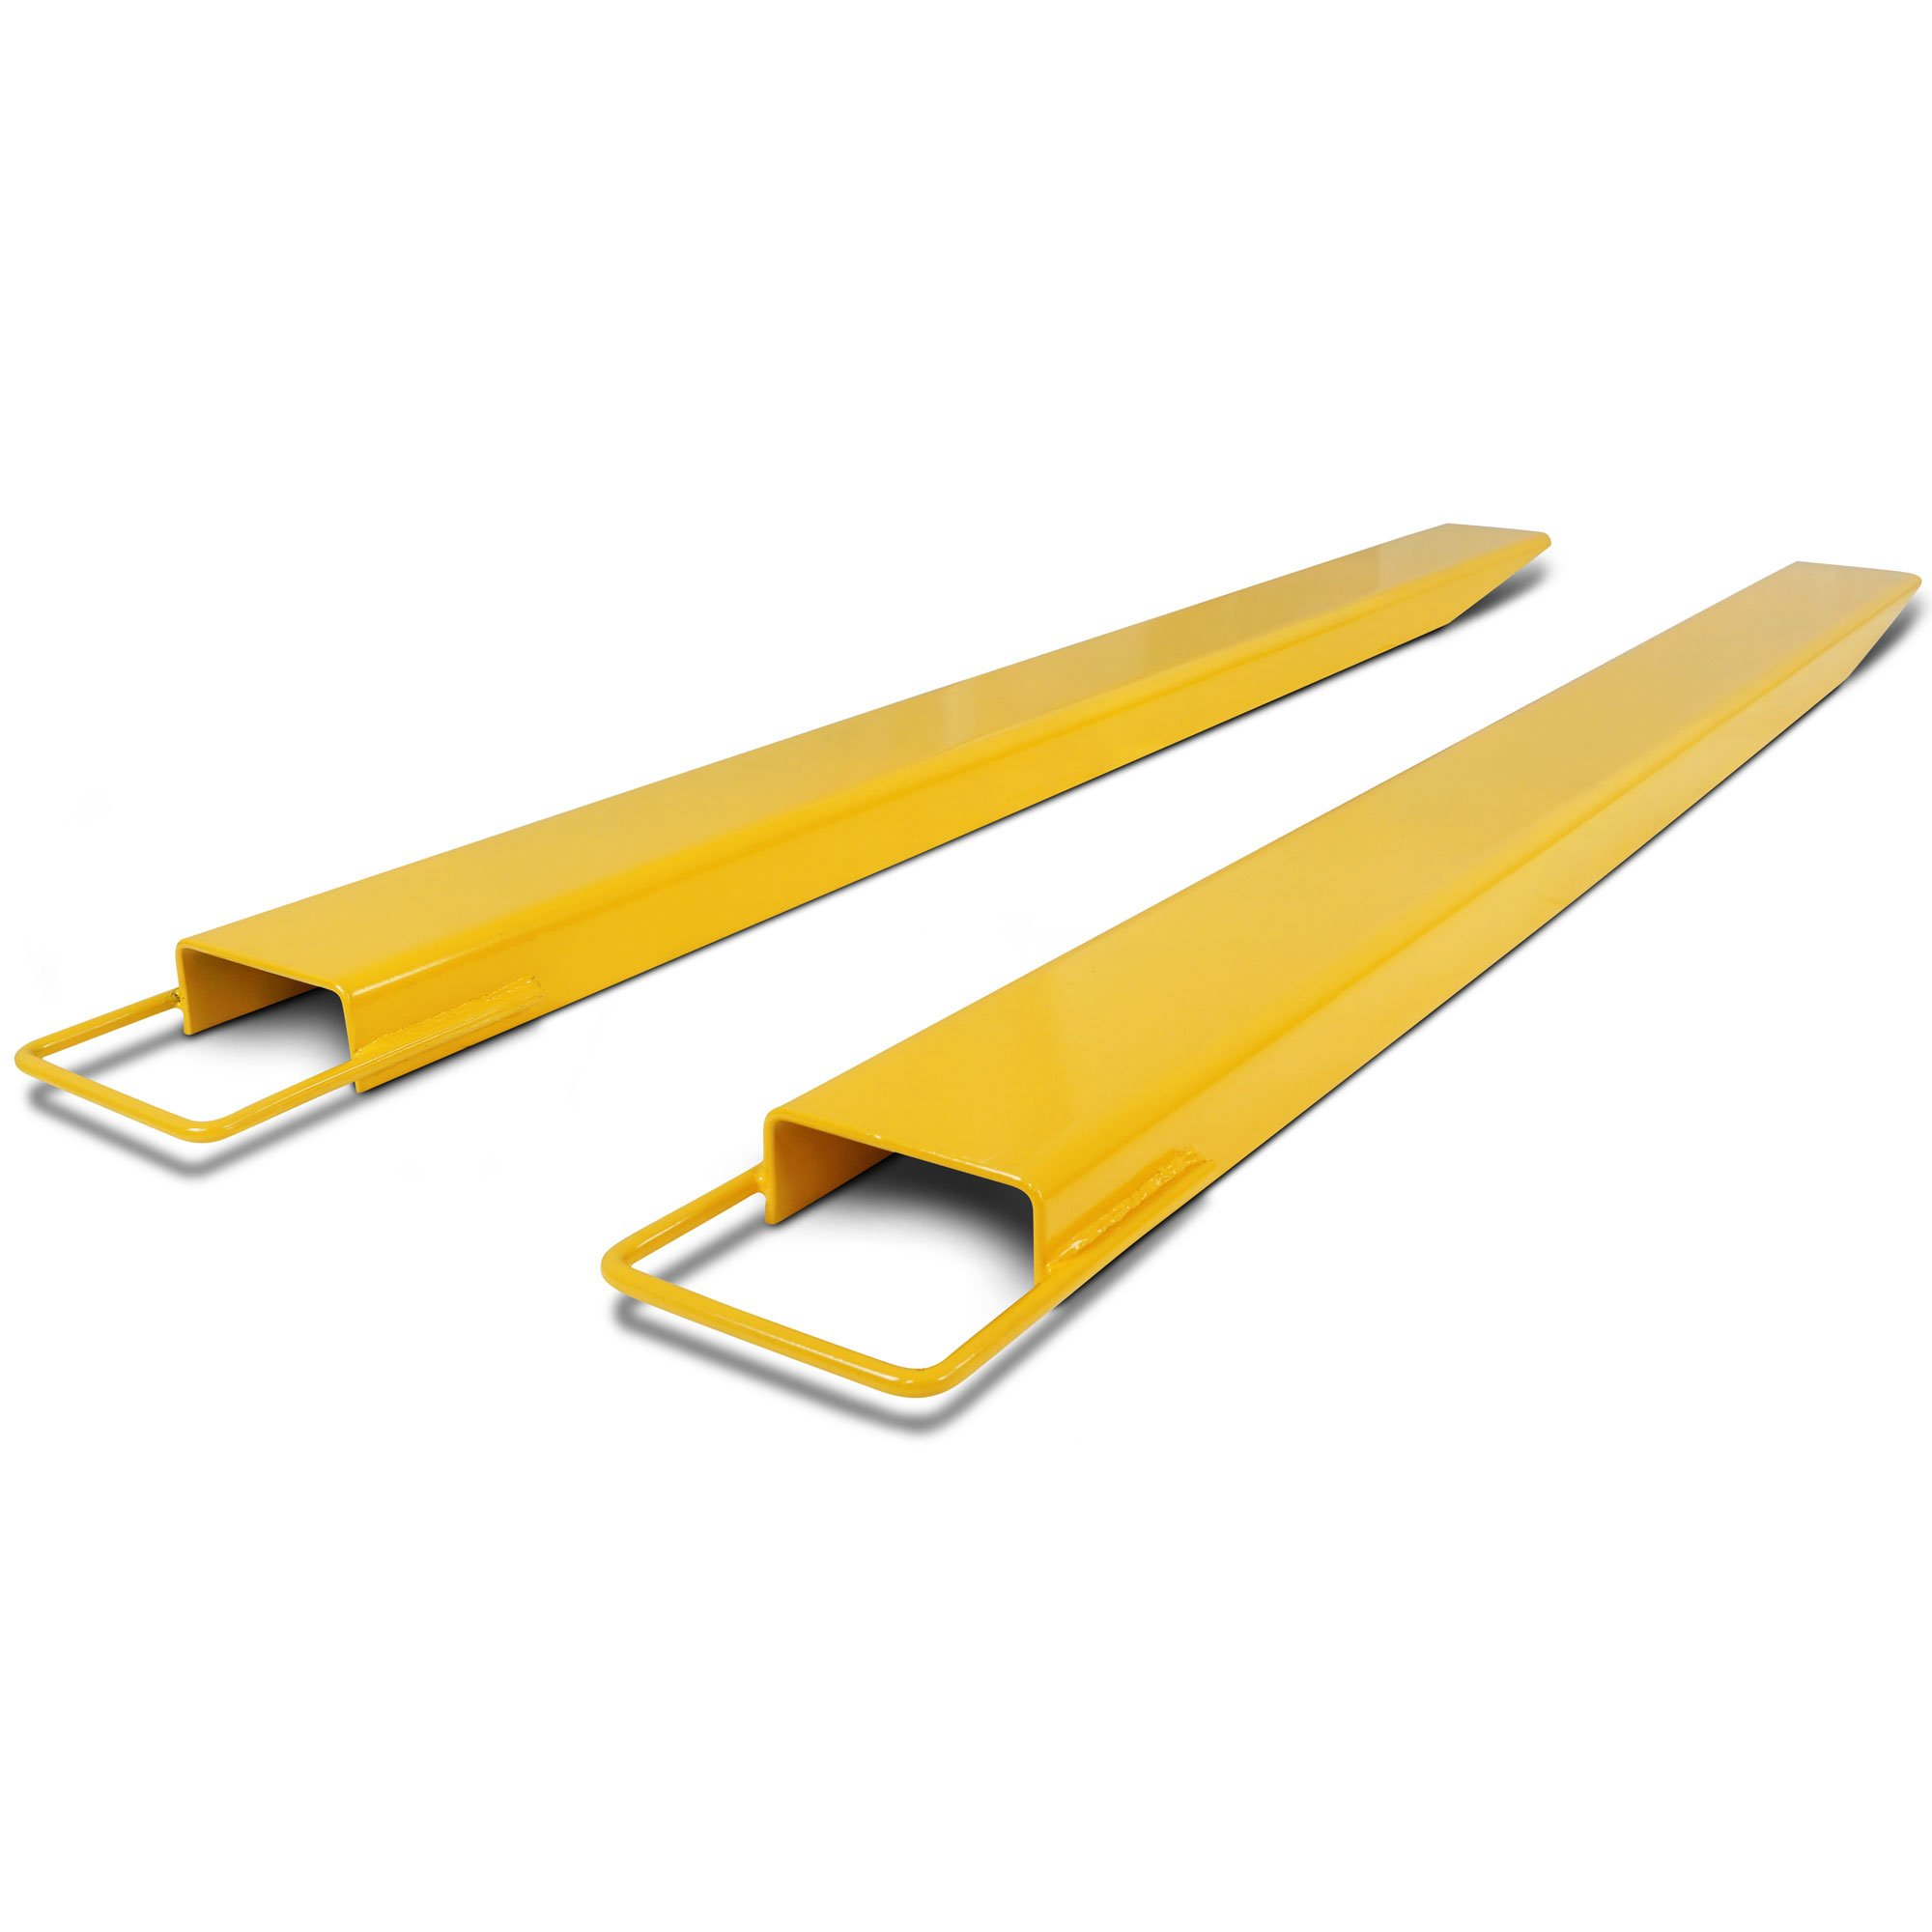 84'' Titan Pallet Fork Extensions for forklifts lift truck slide on steel FX84 by Titan Attachments (Image #2)